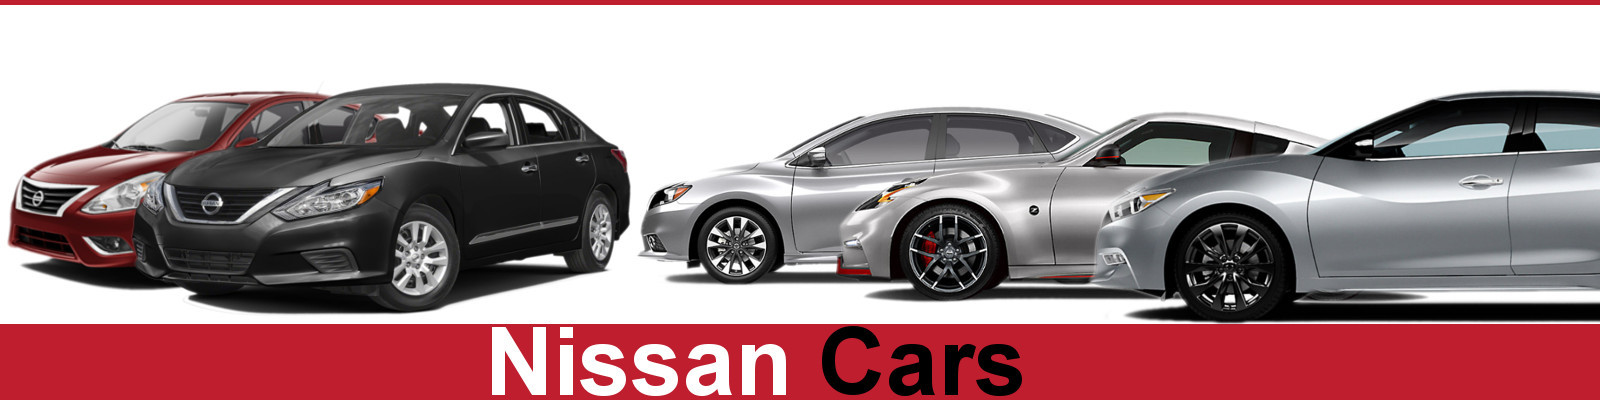 SEARCH: Nissan Cars